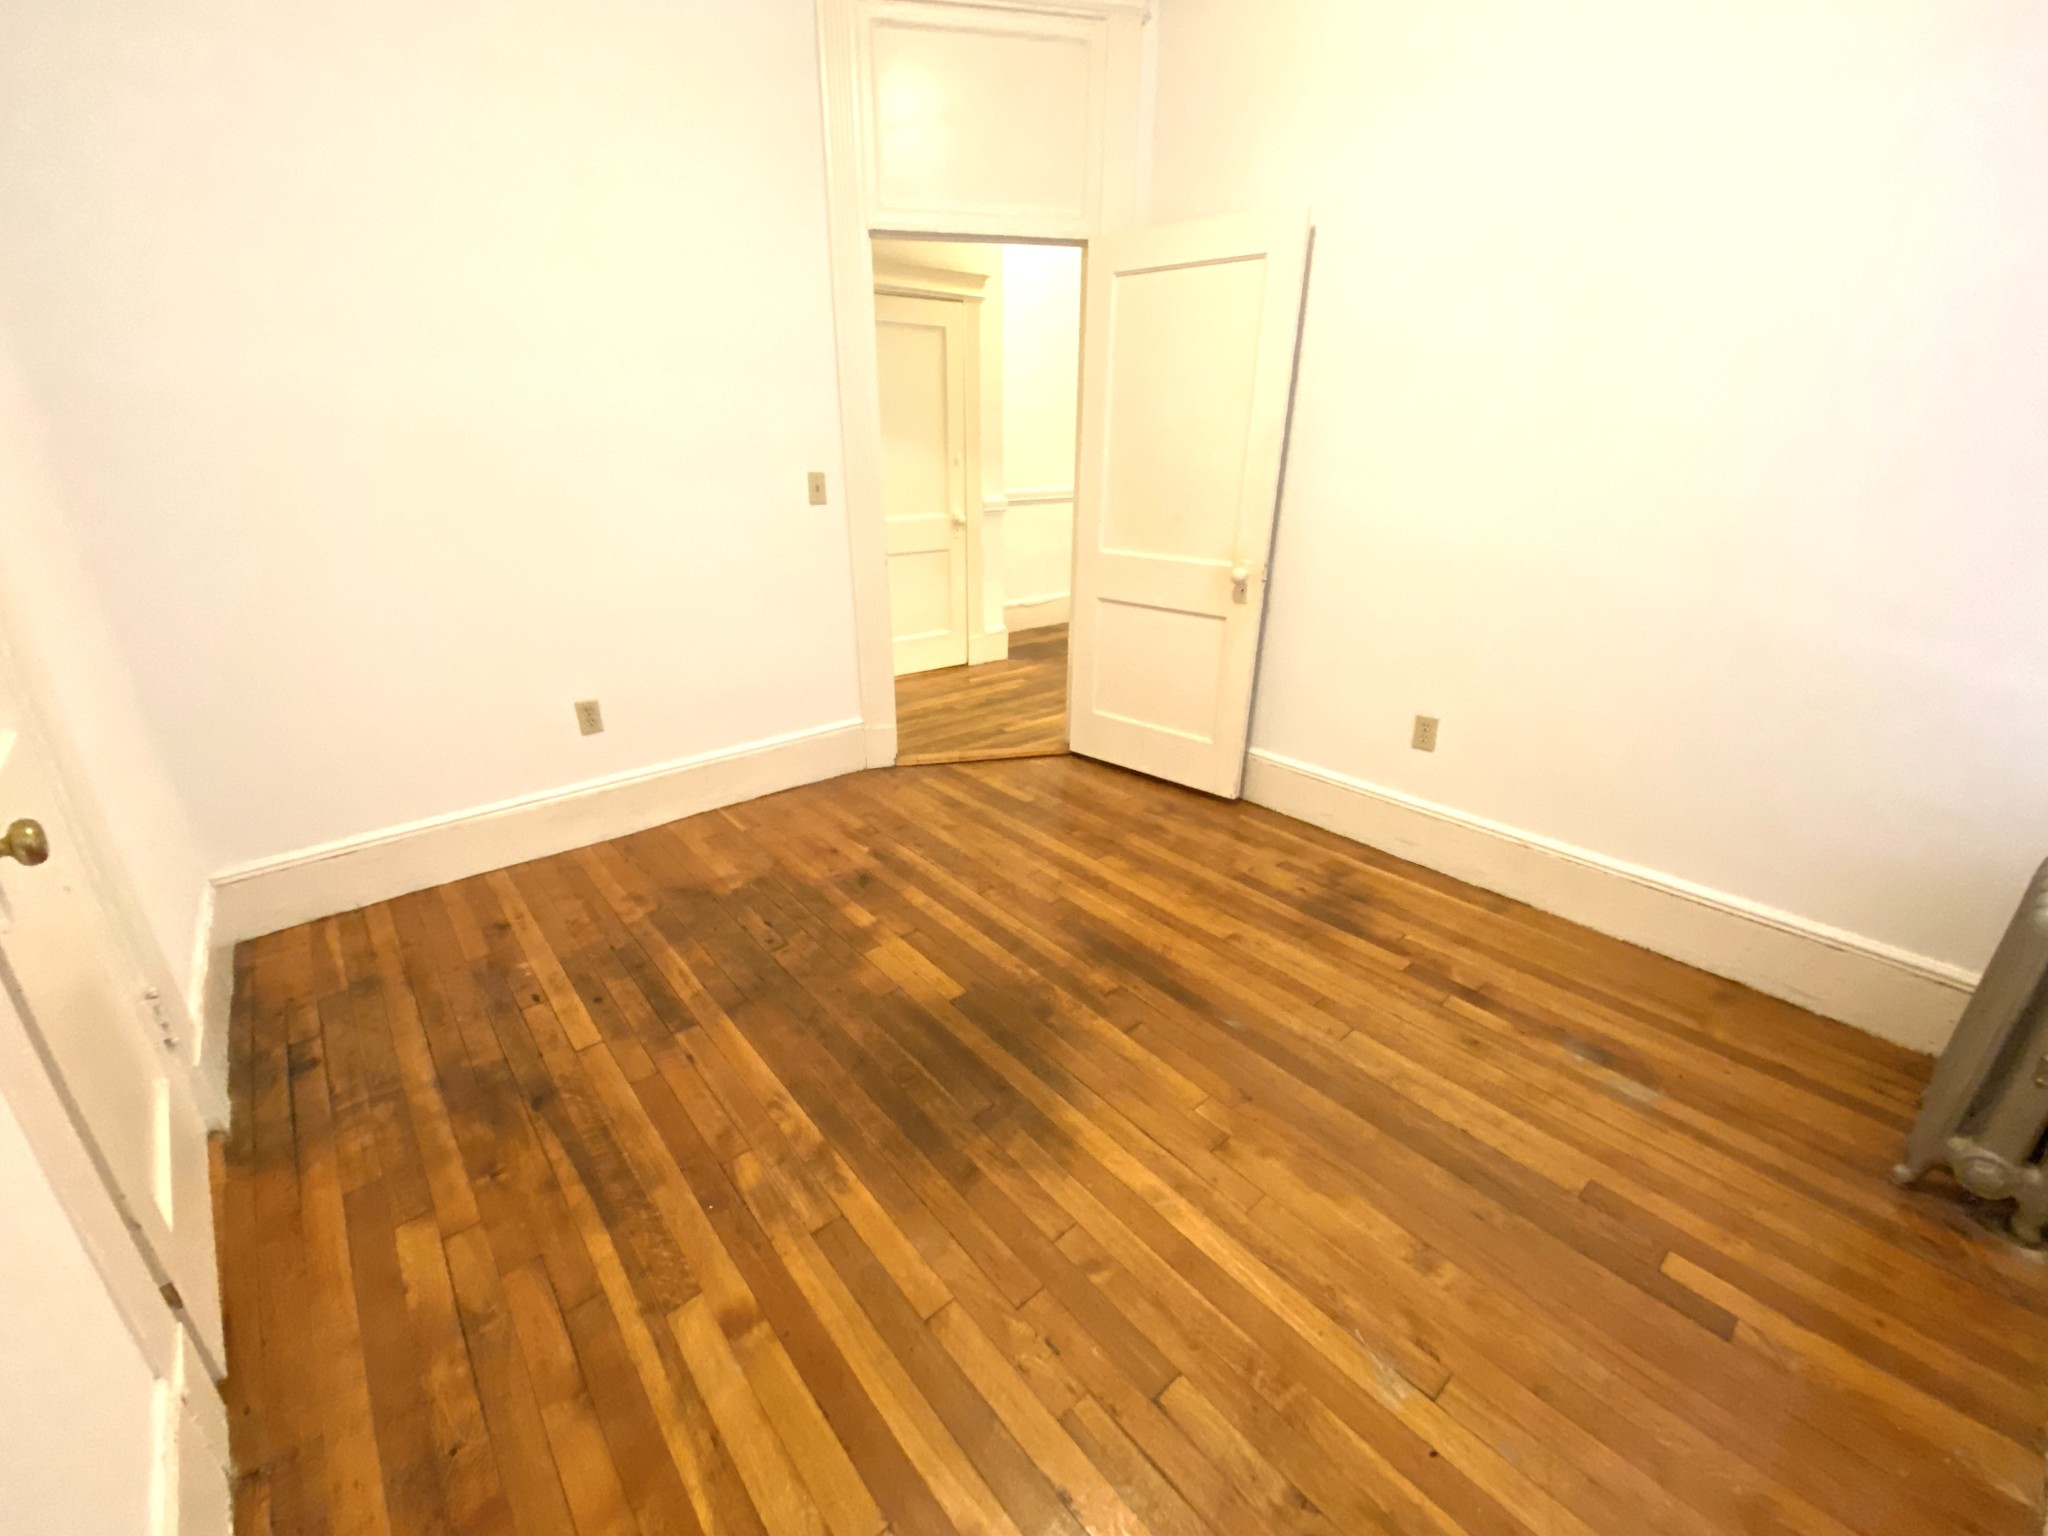 1.8 Beds, 1 Bath apartment in Boston, Fenway for $2,200